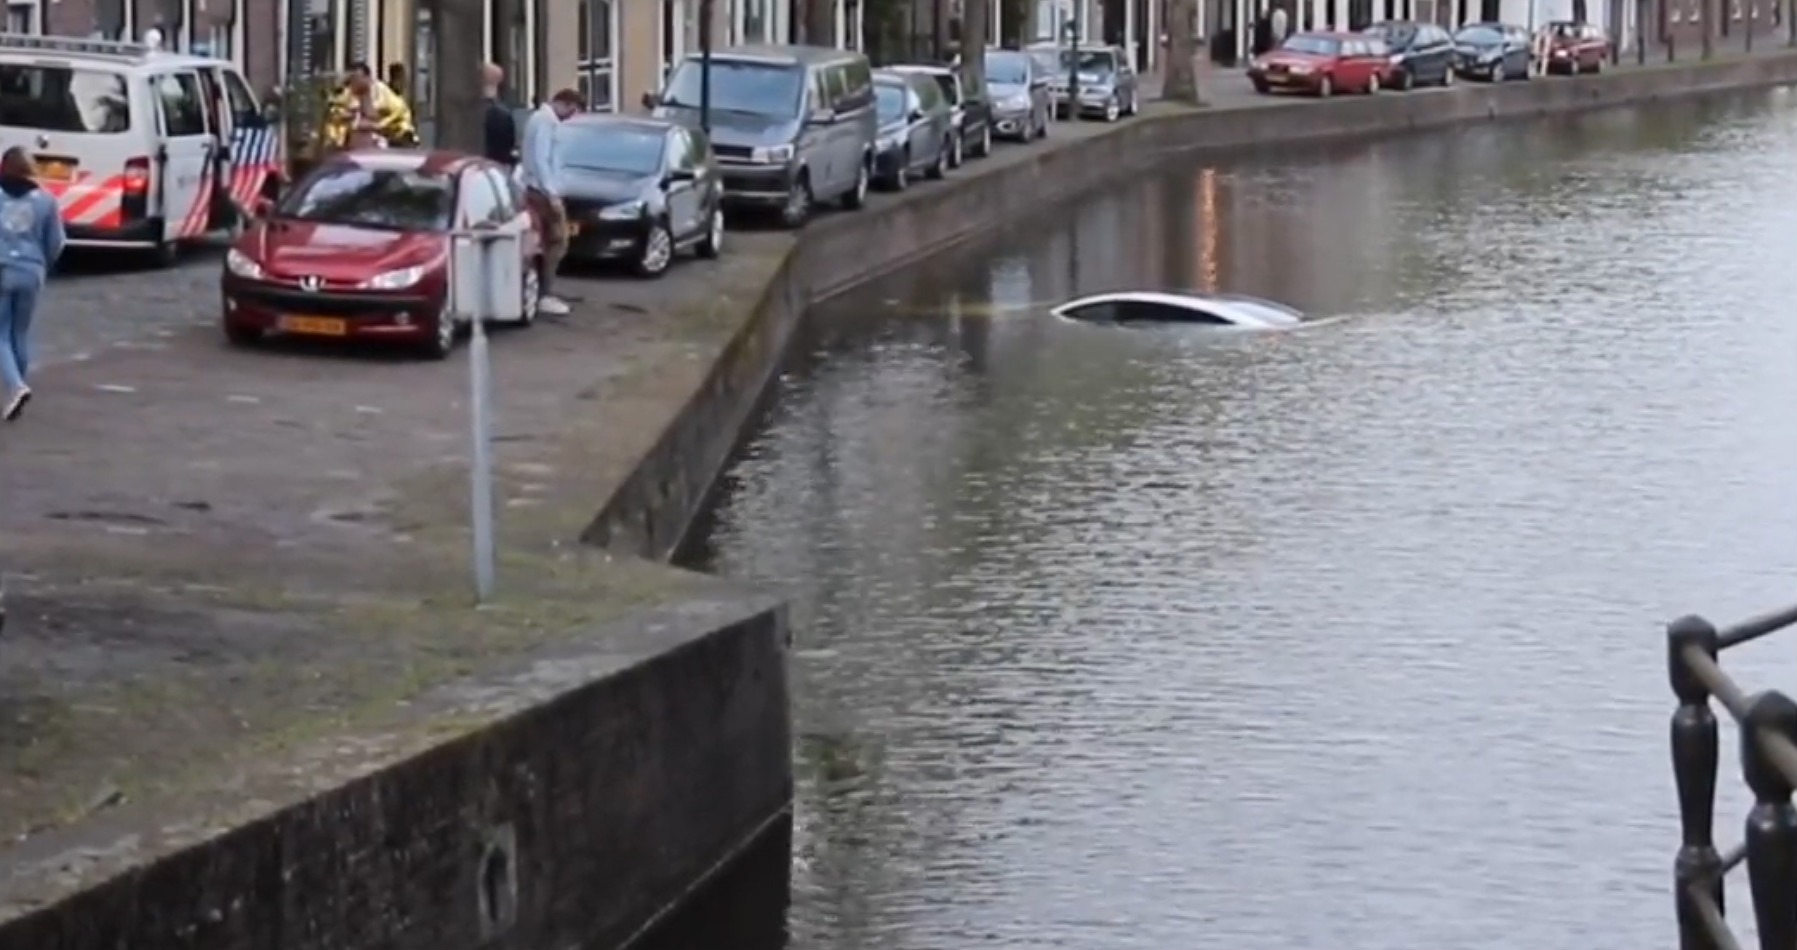 Model X sinks dutch canal 6 [Credit: Flashphoto NL/YouTube]